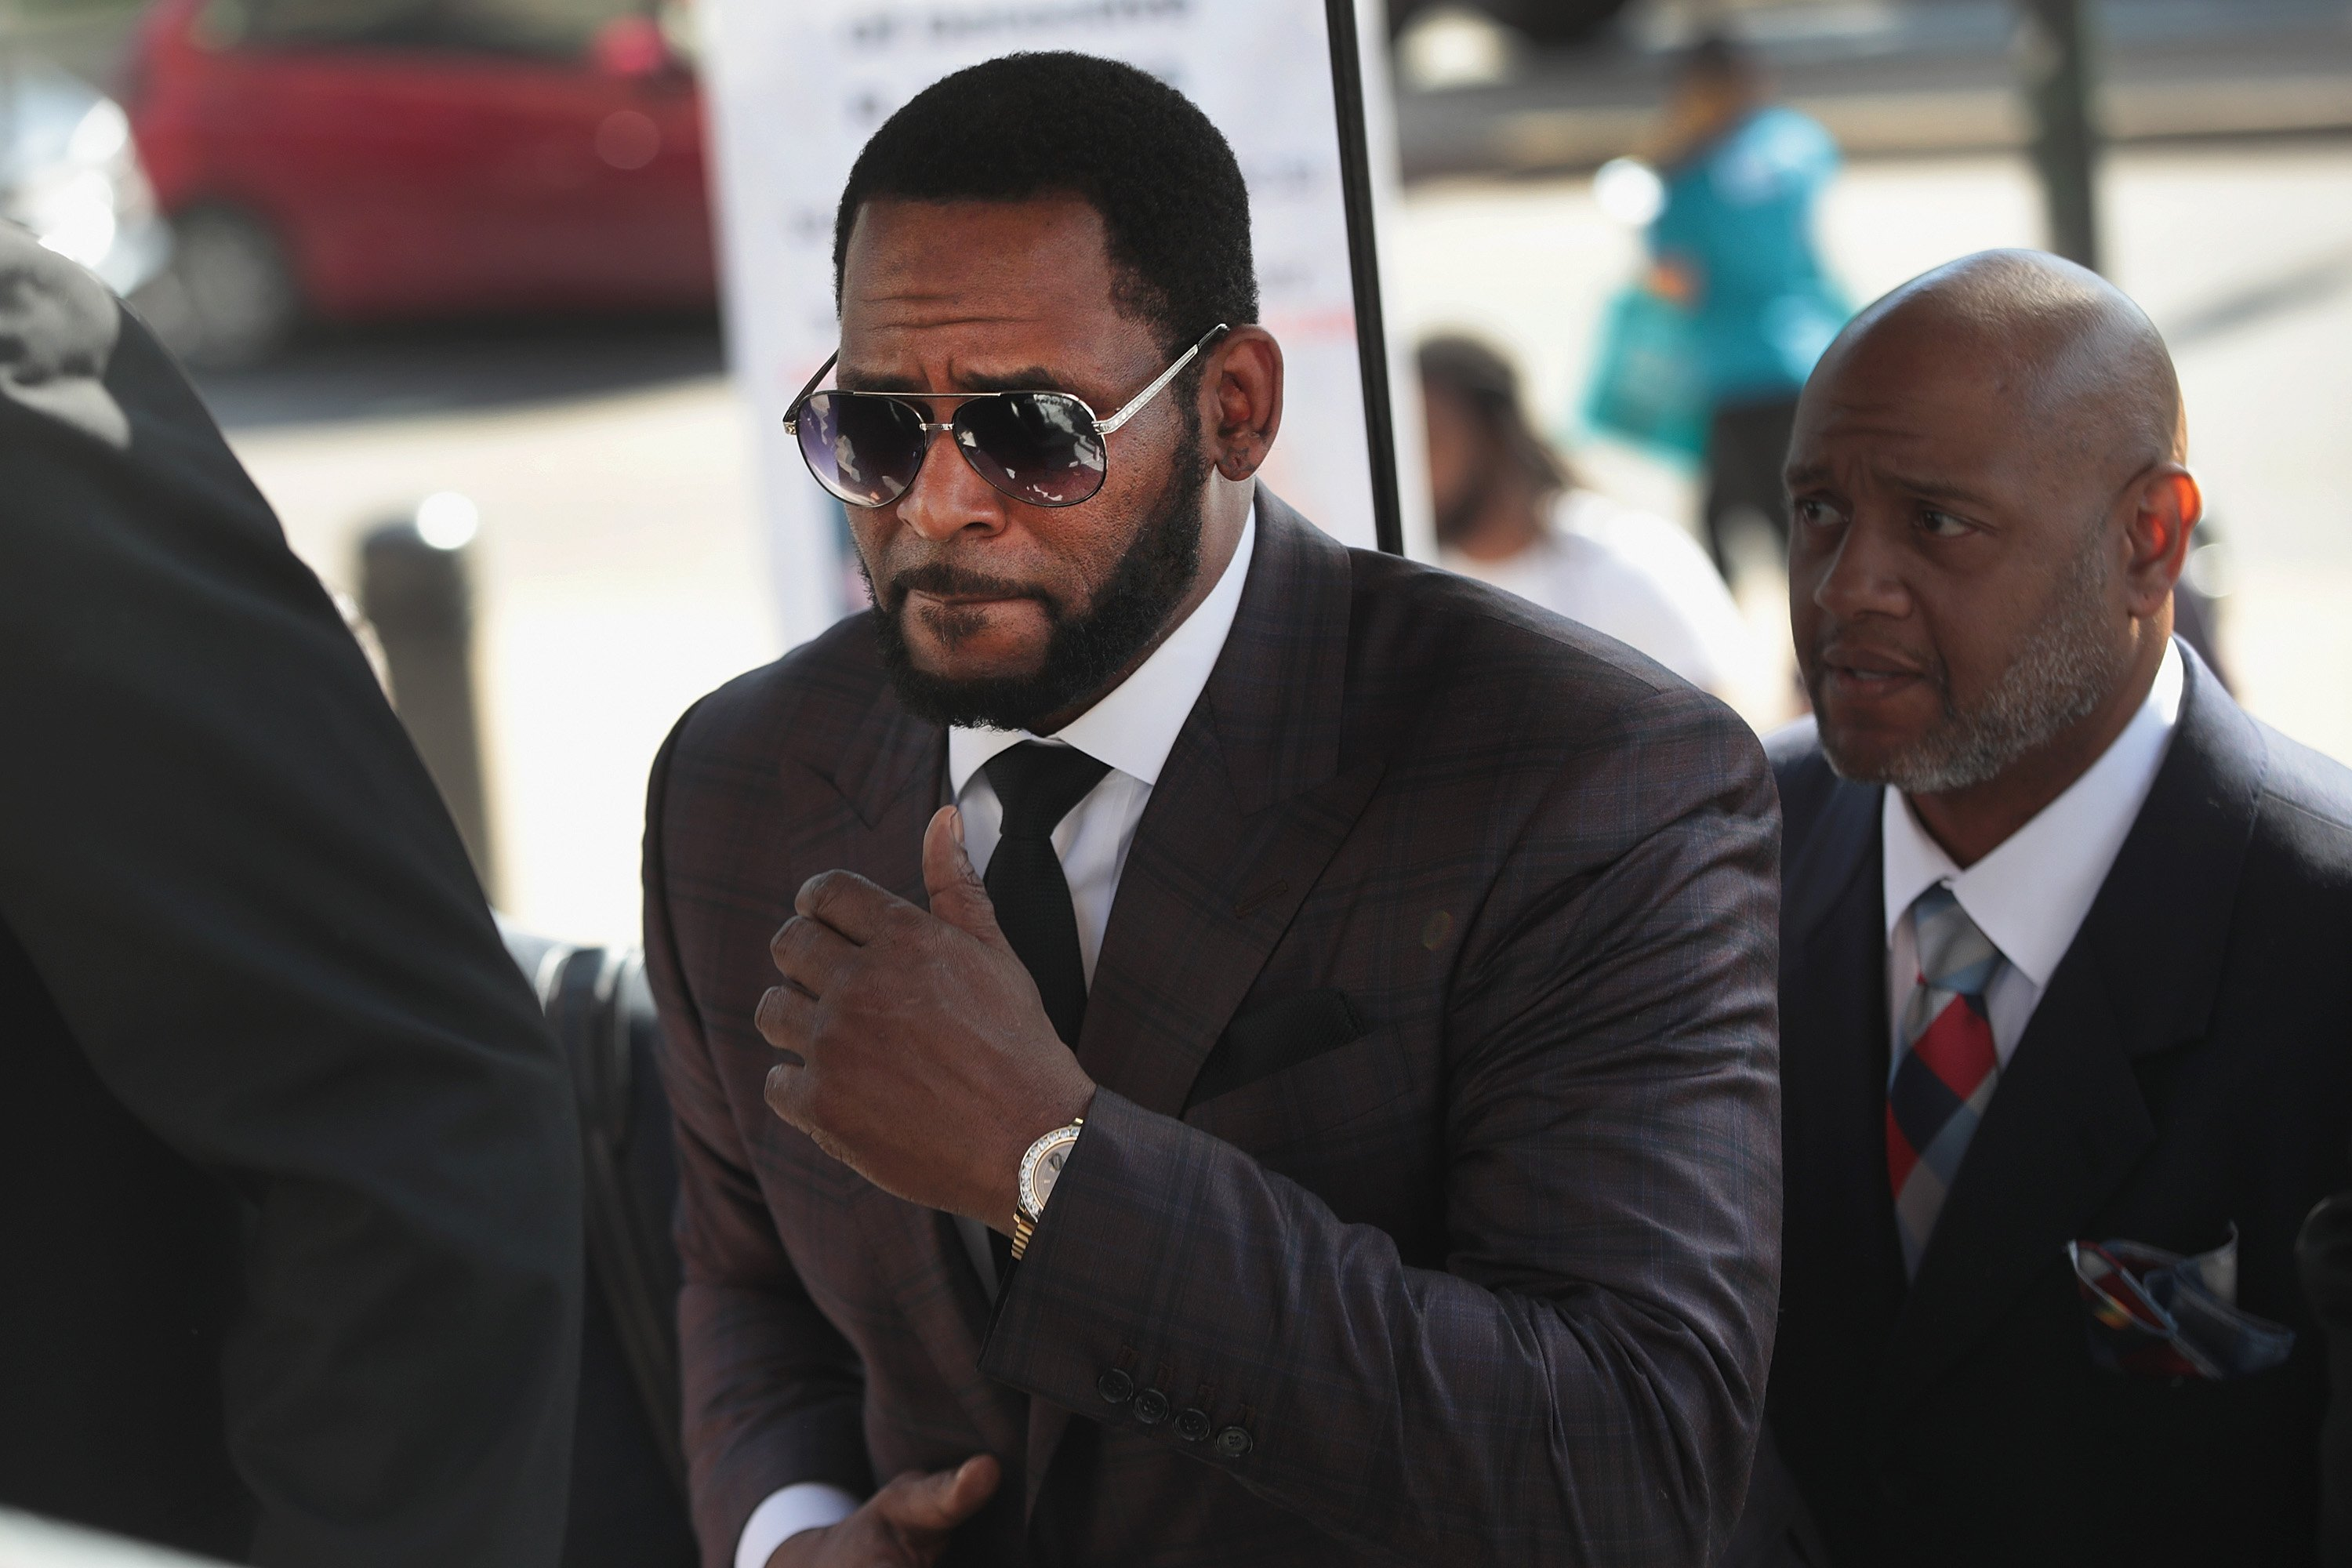 R. Kelly arriving at the Leighton Criminal Courts Building for a hearing in Chicago, Illinois while facing several counts of aggravated sexual abuse. | Photo:  Scott Olson/Getty Images